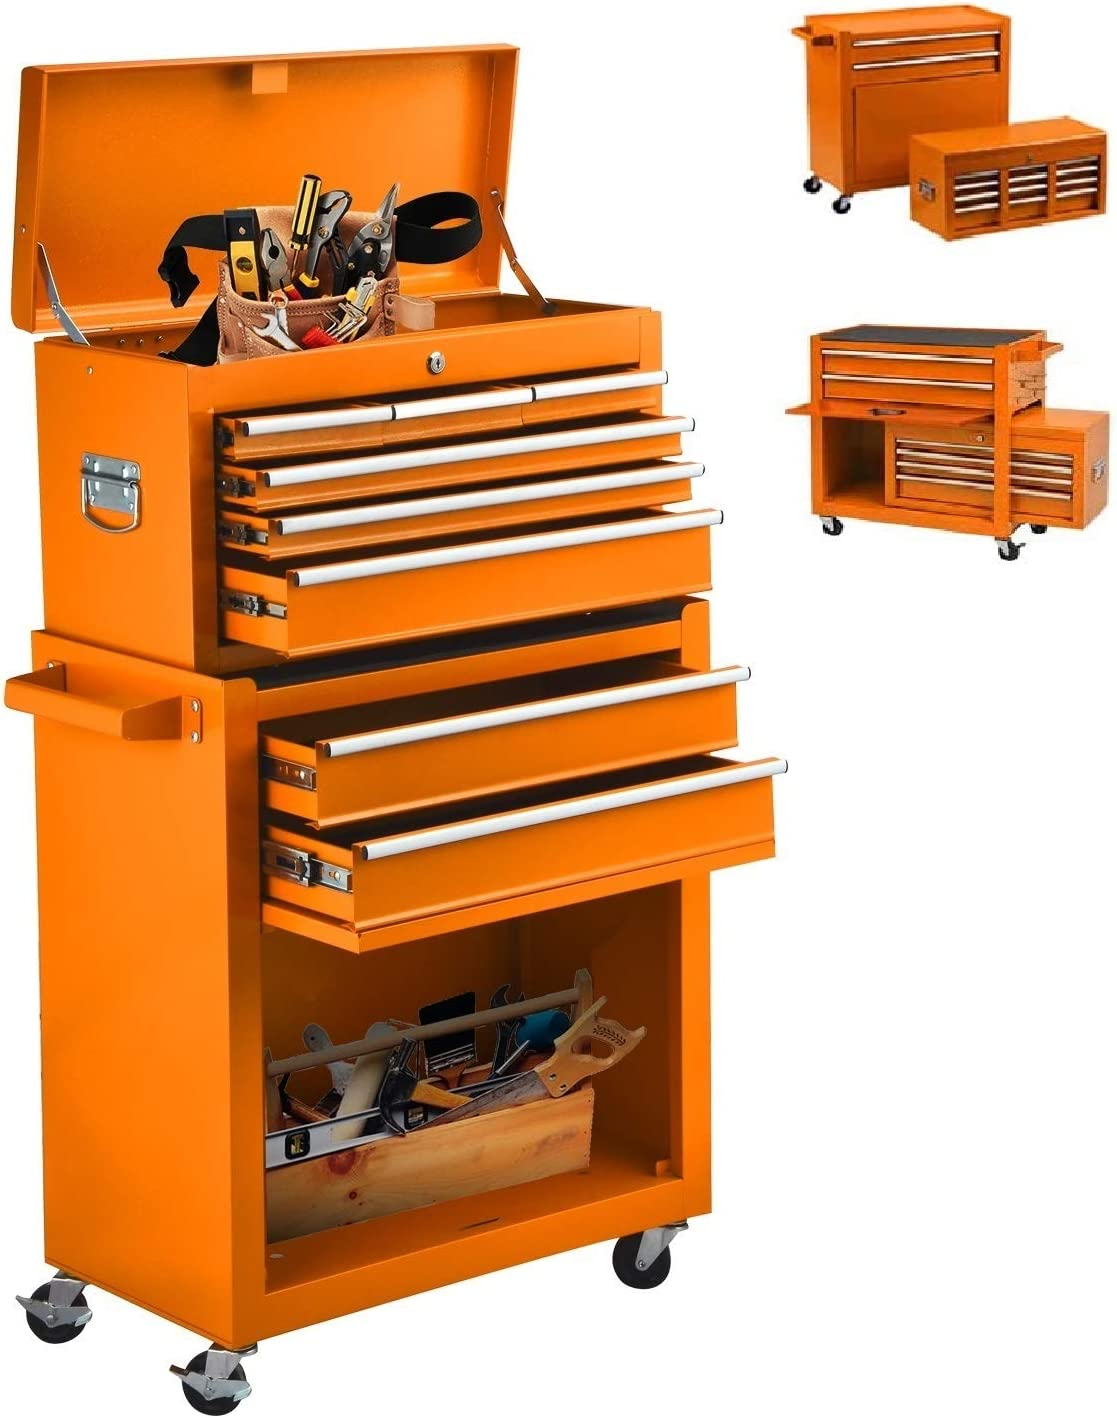 Large Tool Chest 8-Drawer Removable Tool Box With Locks,Tool Storage Cabinet With Wheels Simple Assembly Orange